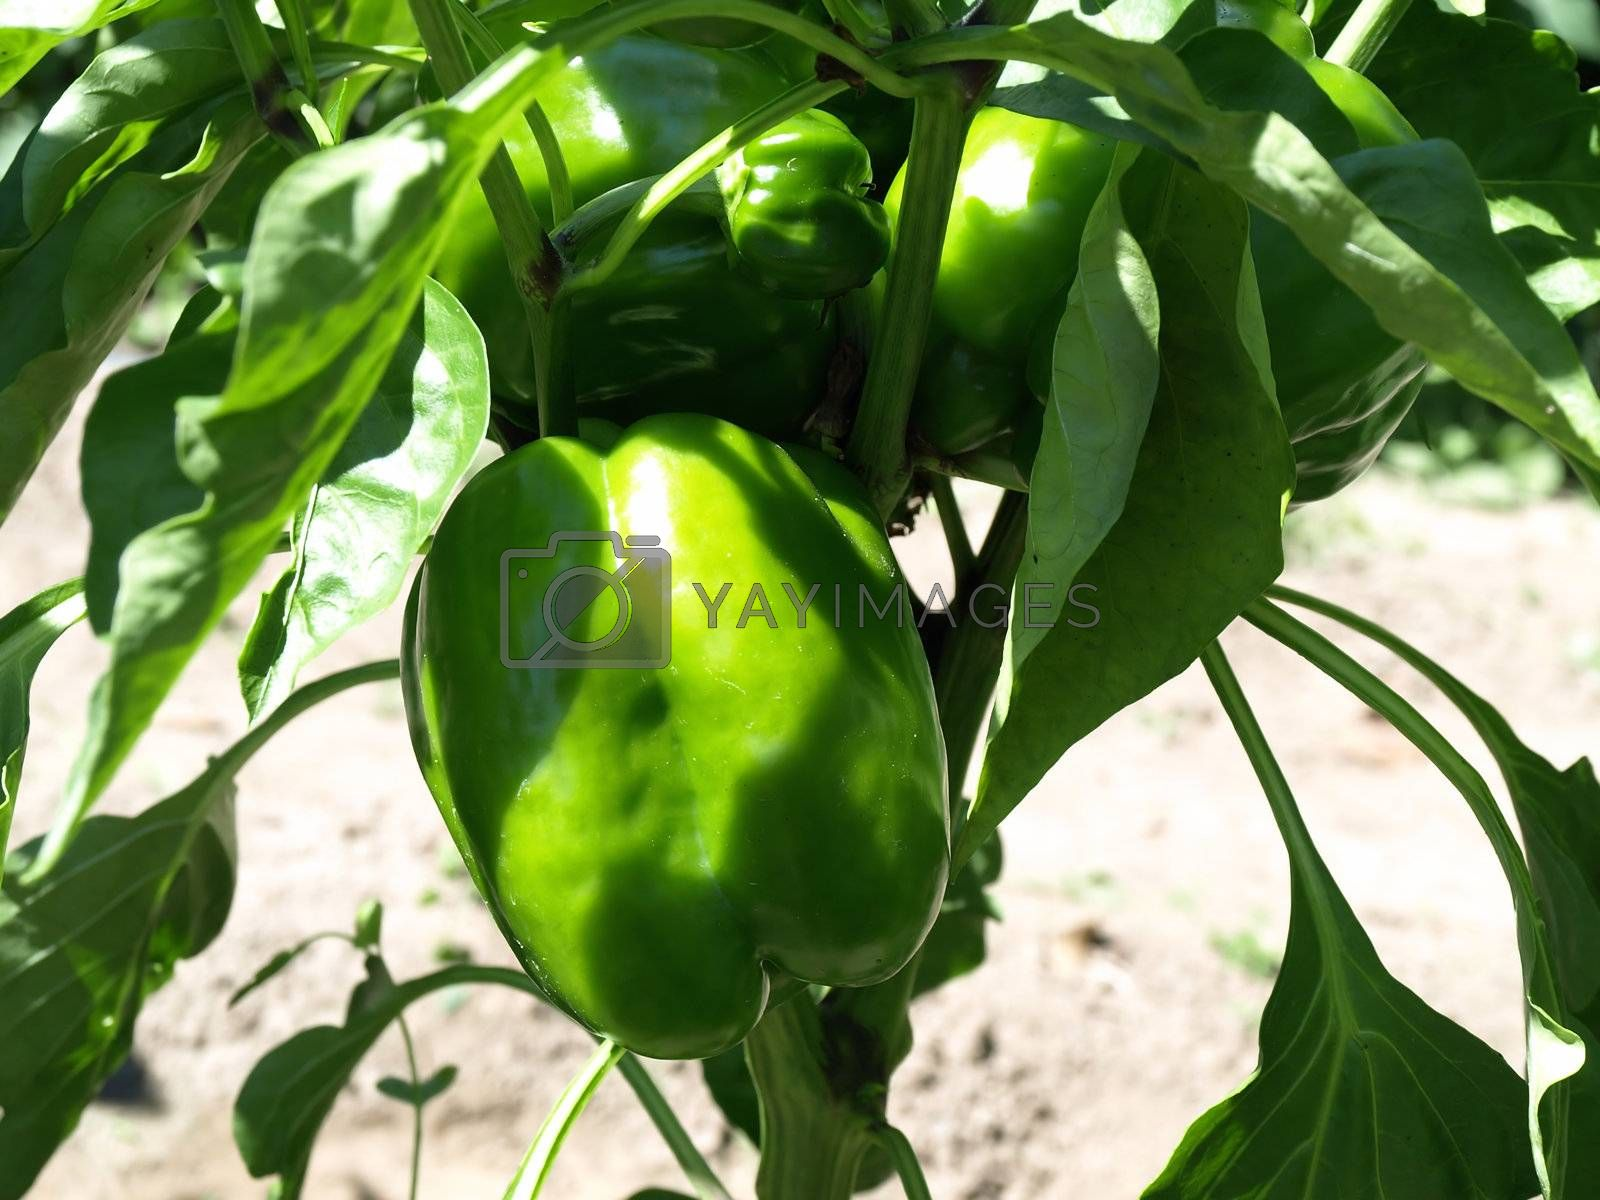 Beautiful green bell peppers growing on a vine in a garden